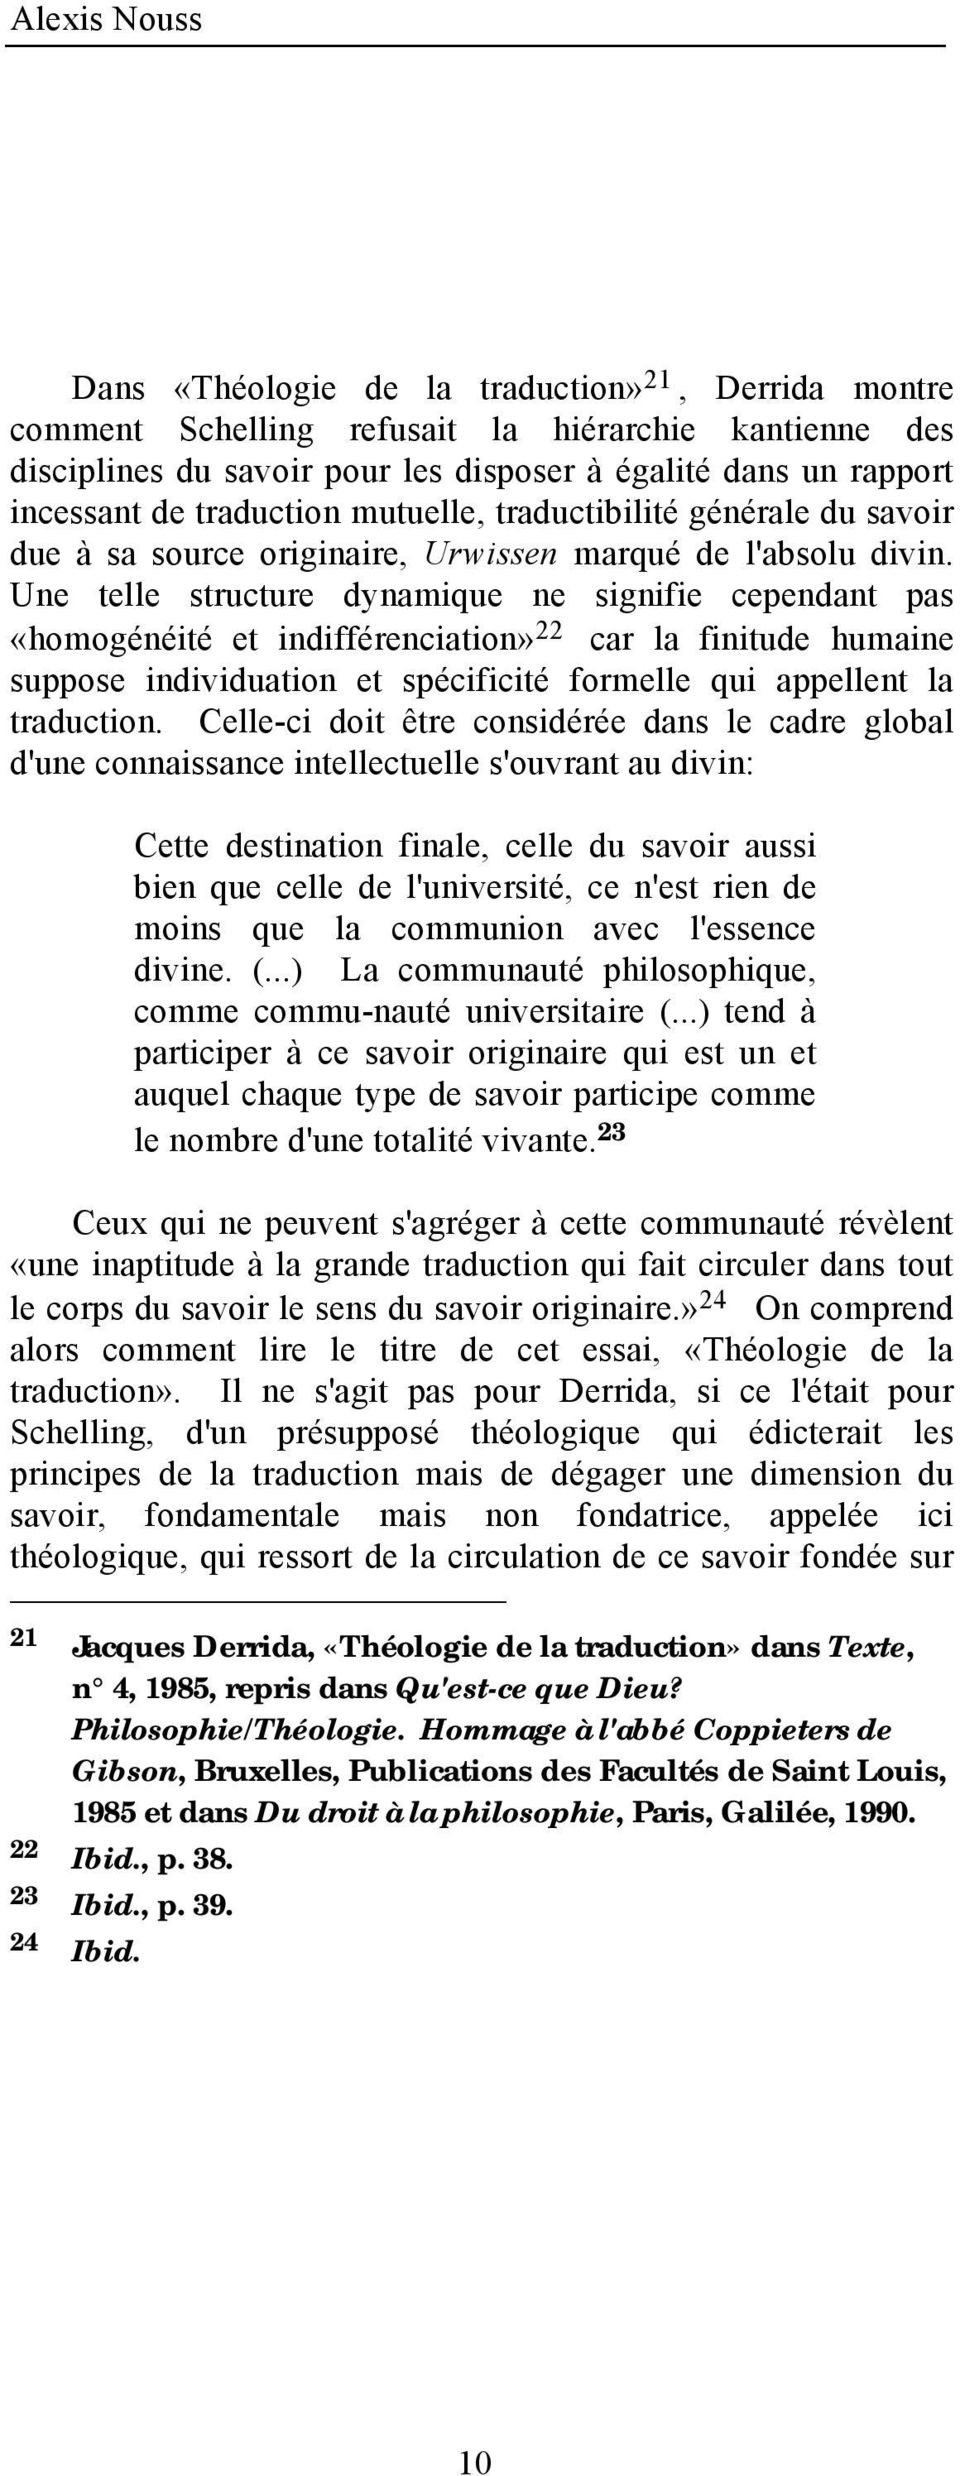 Une telle structure dynamique ne signifie cependant pas «homogénéité et indifférenciation» 22 car la finitude humaine suppose individuation et spécificité formelle qui appellent la traduction.